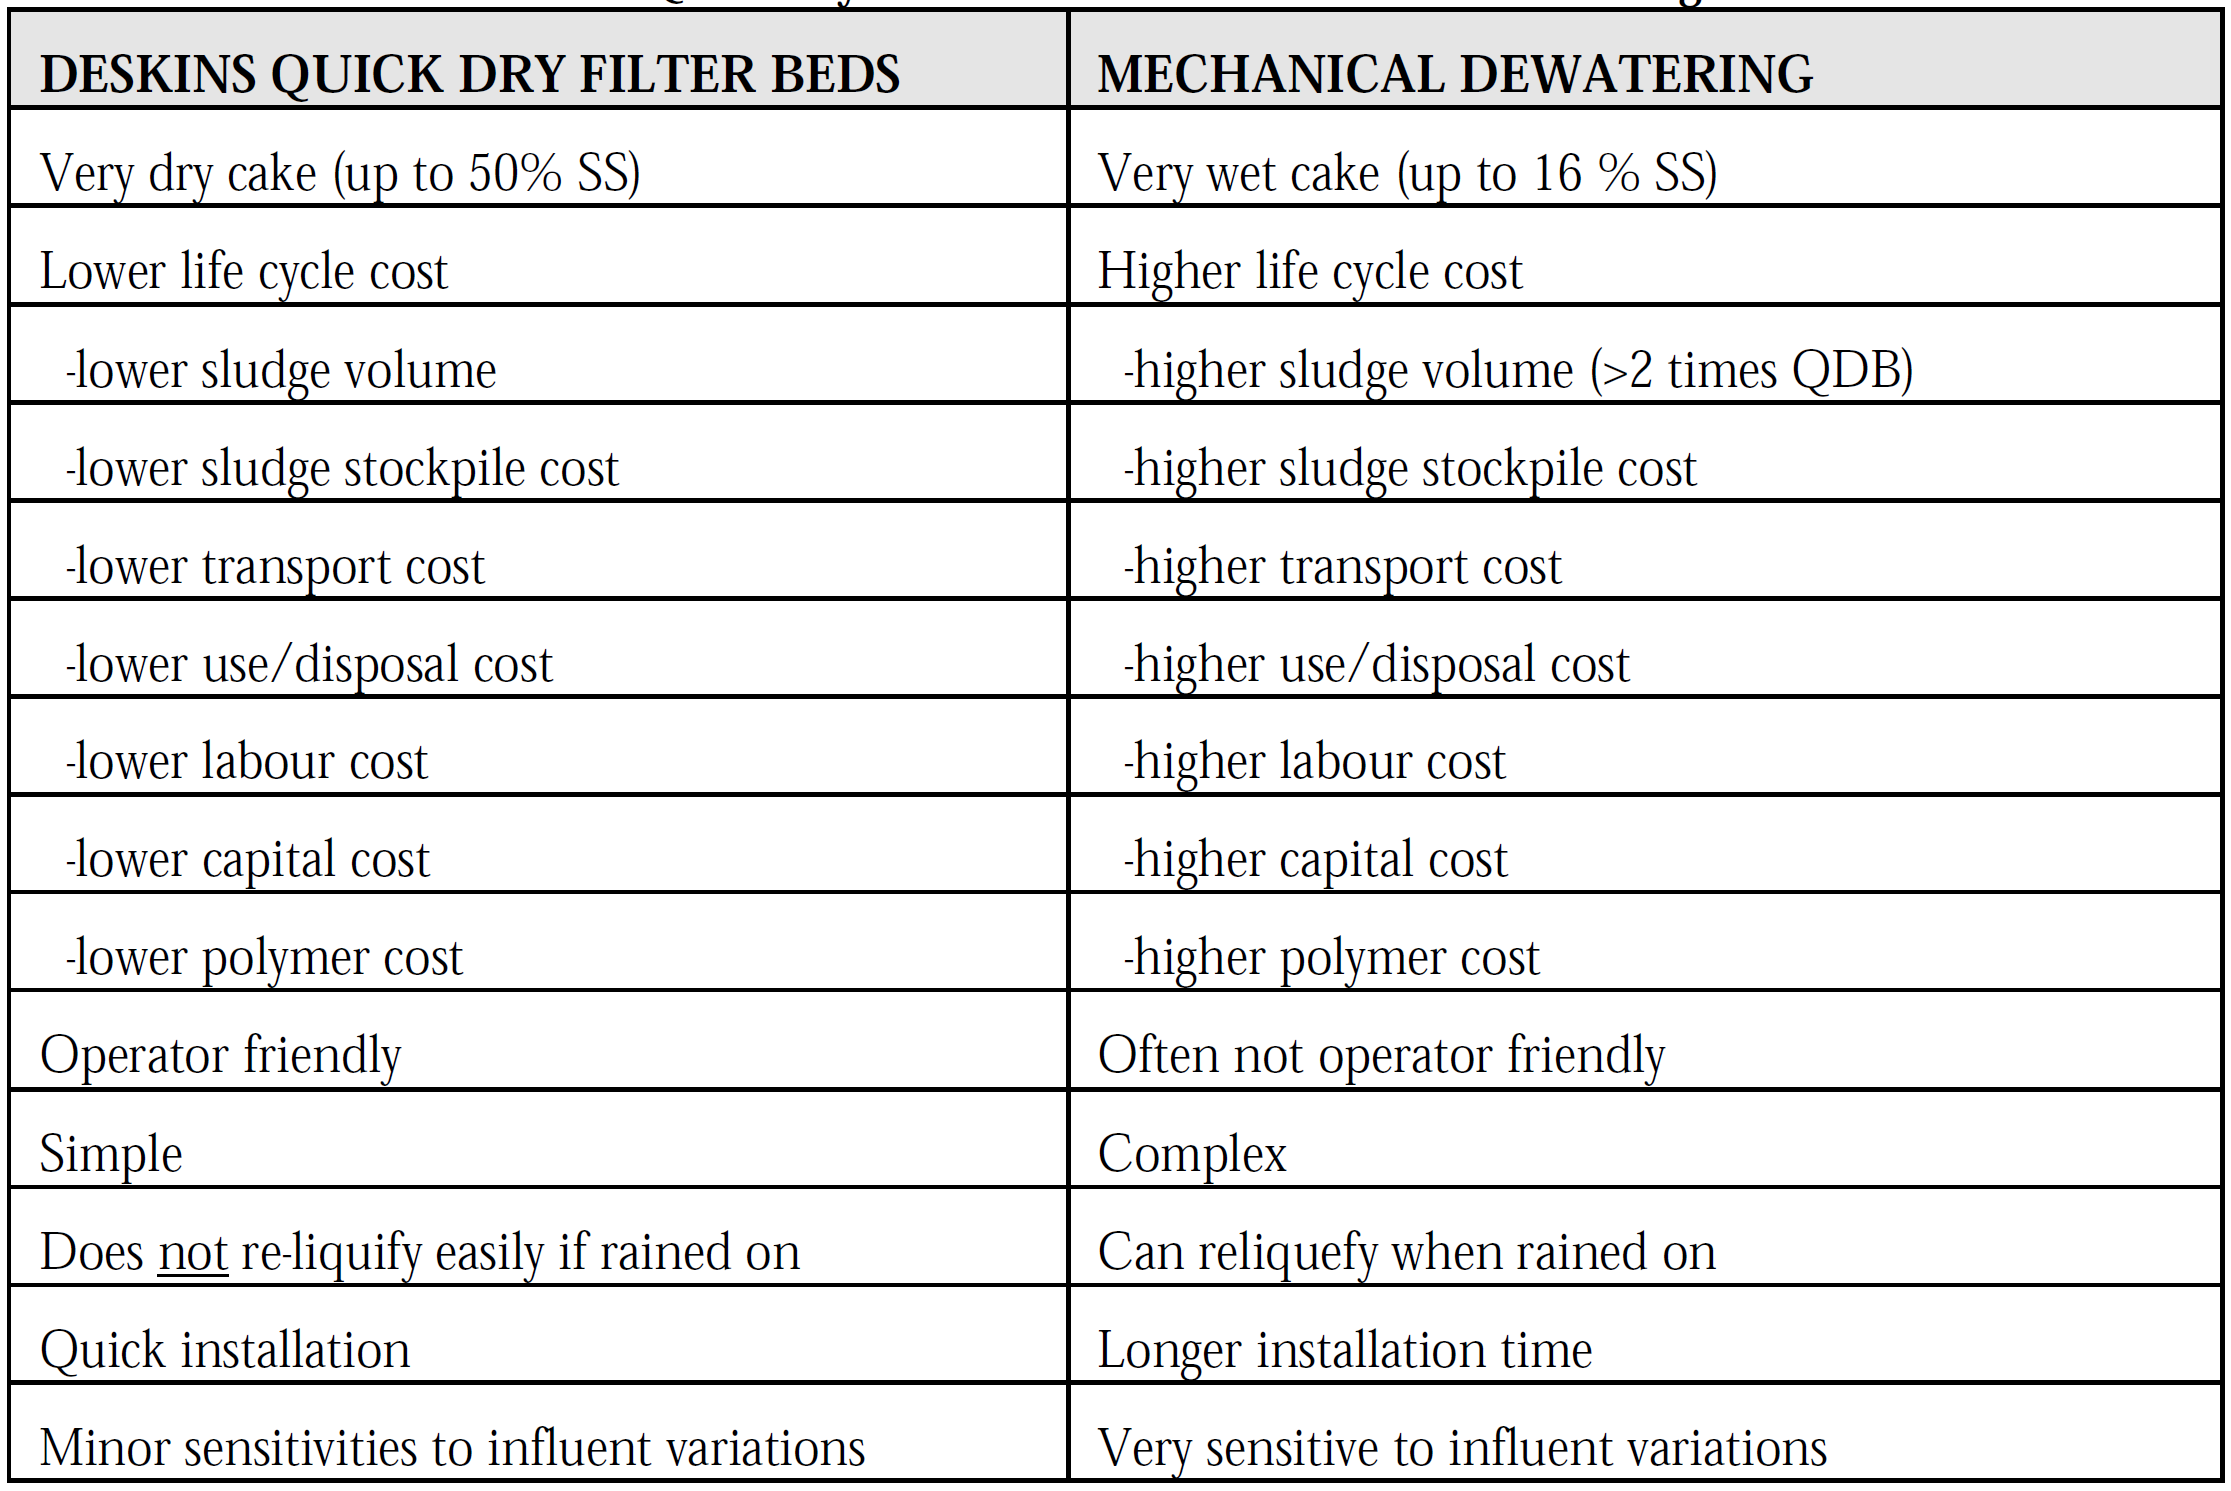 deskins vs. mechanical dewatering.PNG